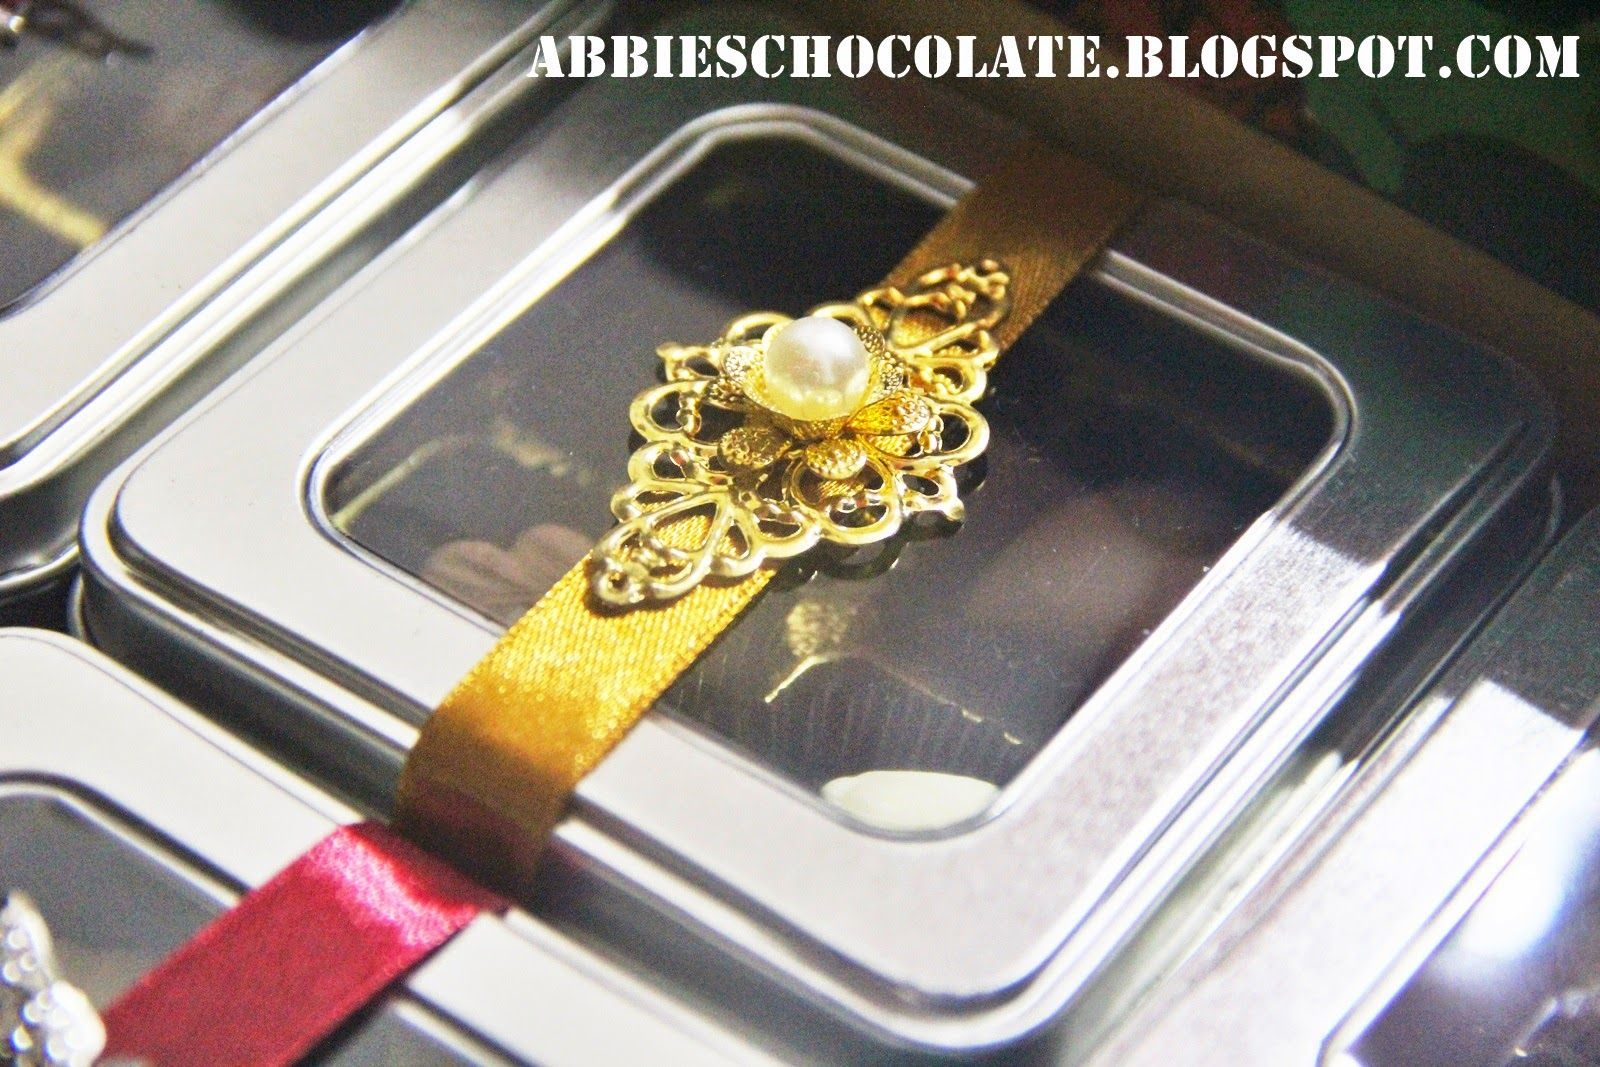 Door Gift For Wedding: Abbies Chocolate: CHOCOLATE FOR WEDDING DOOR GIFT (Lovely